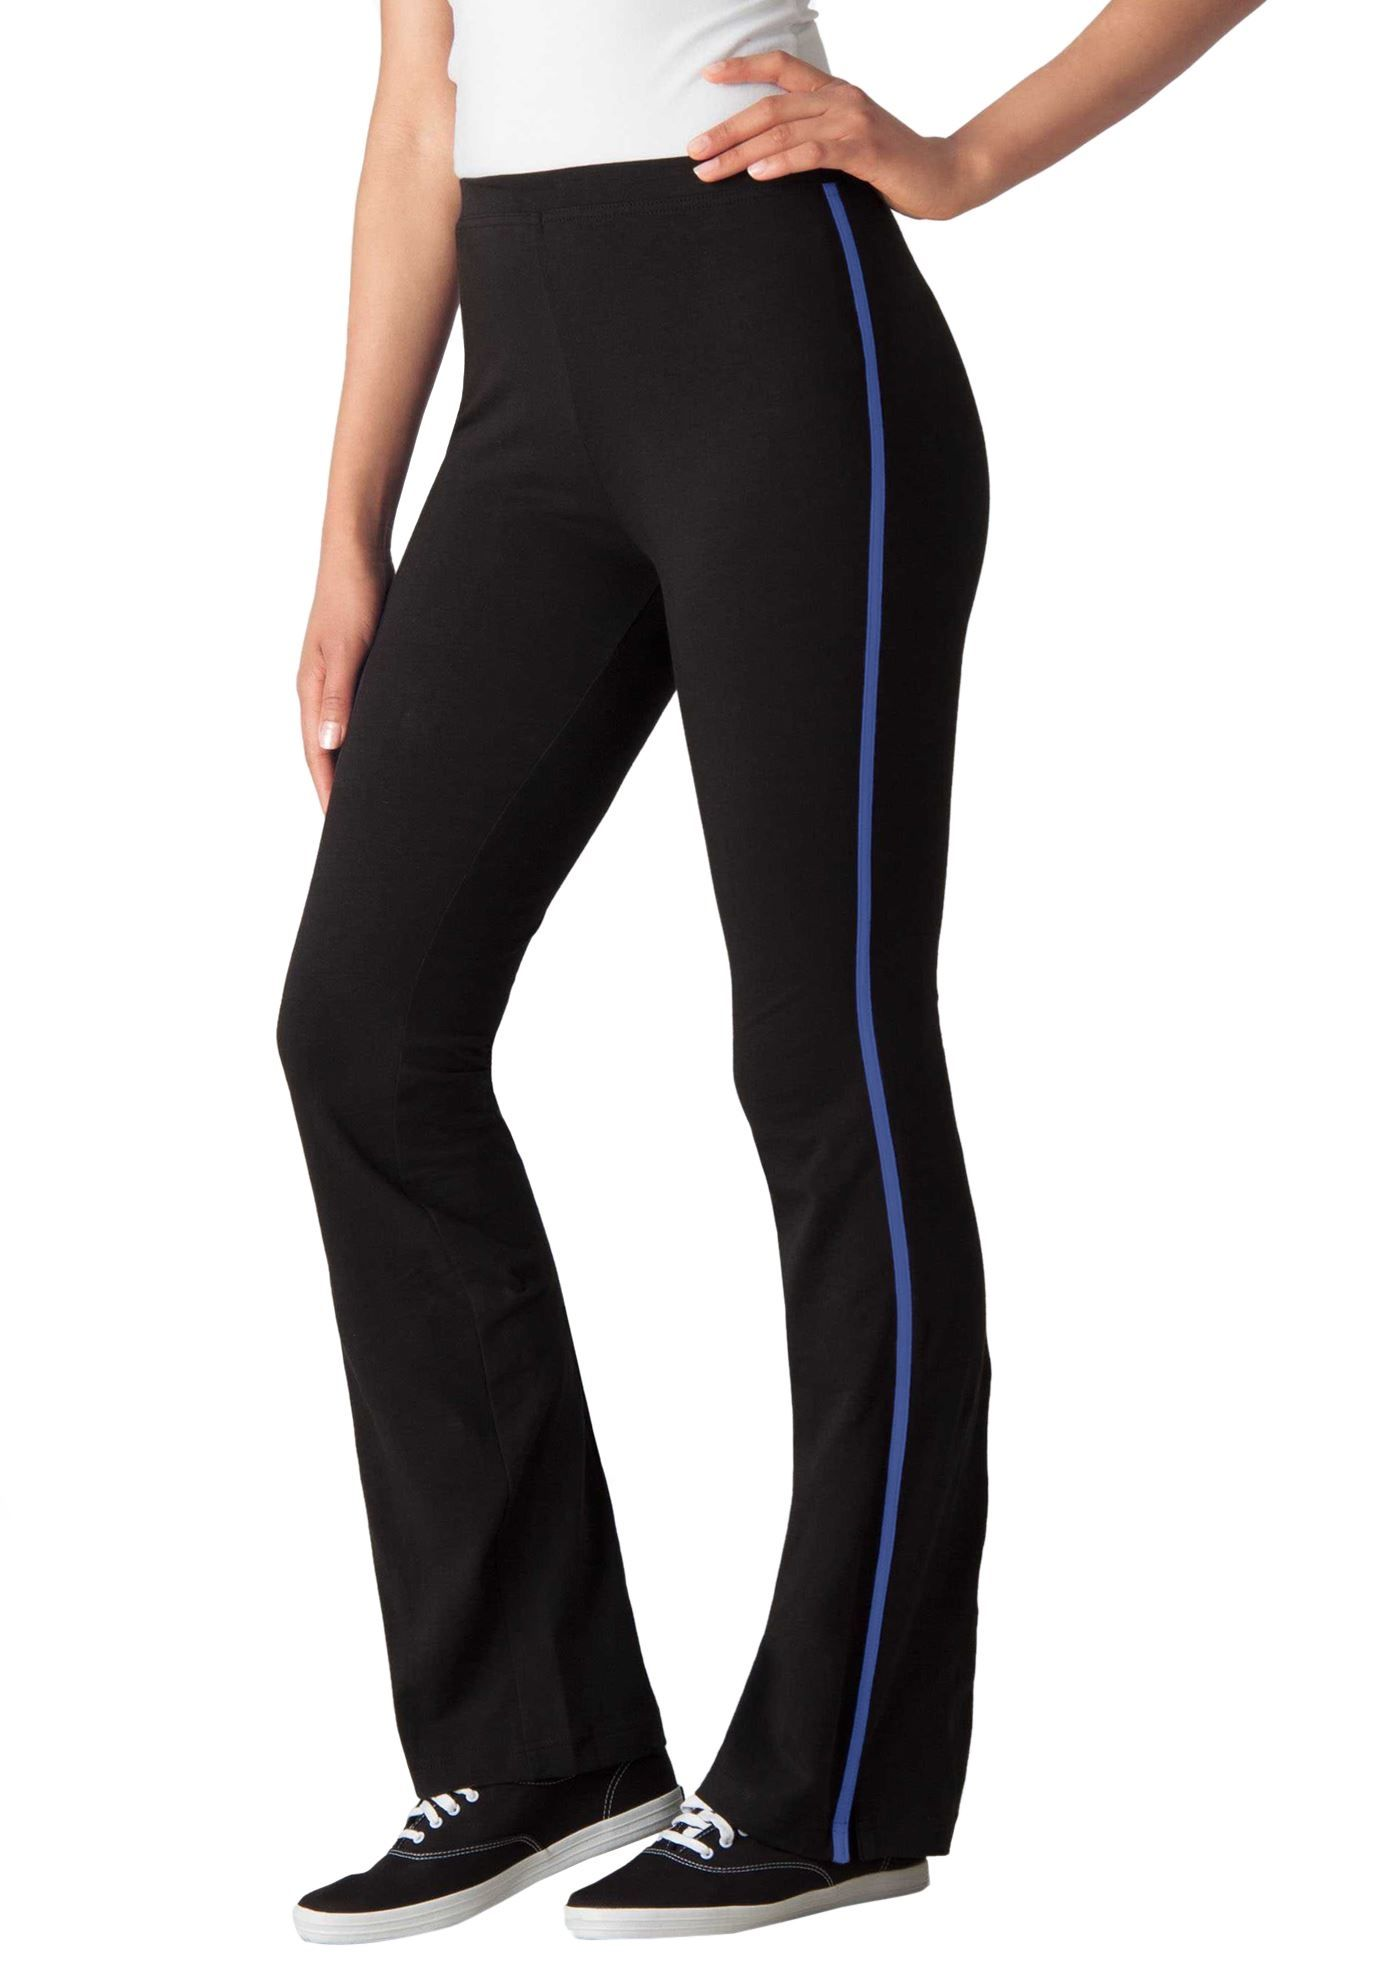 Petite Stretch Bootcut Yoga Pants With Side Stripes Plus Size ...